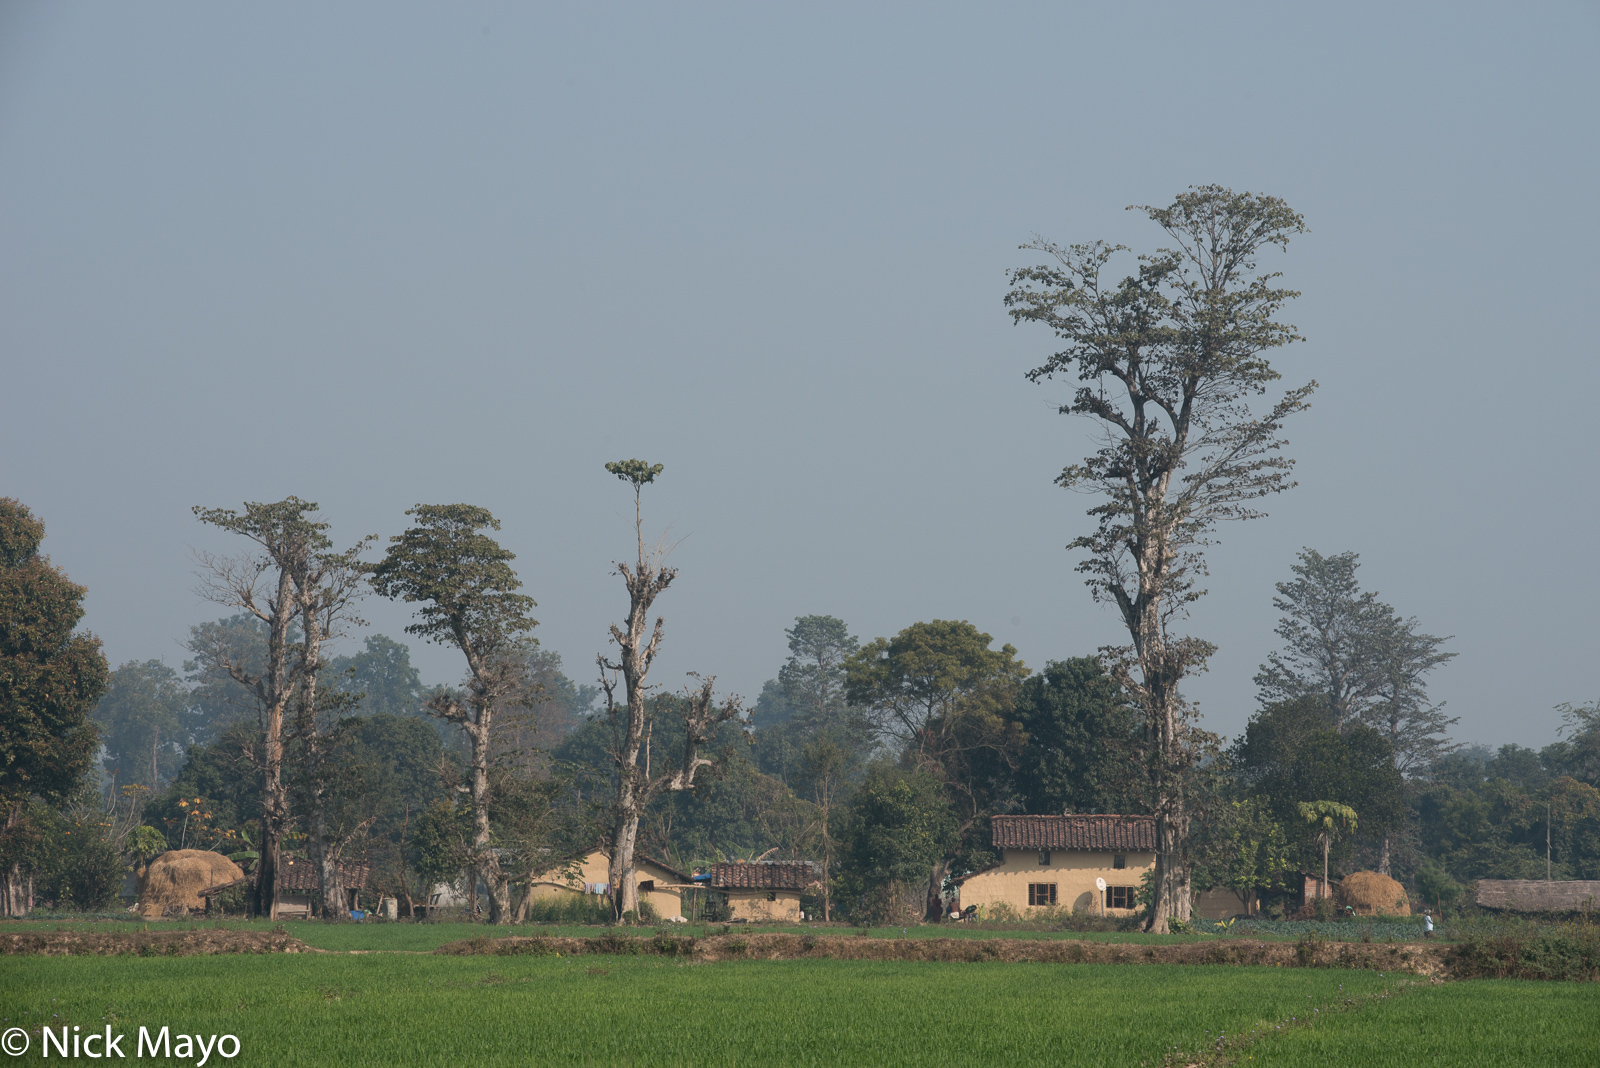 Nepal, Terai, Village, photo